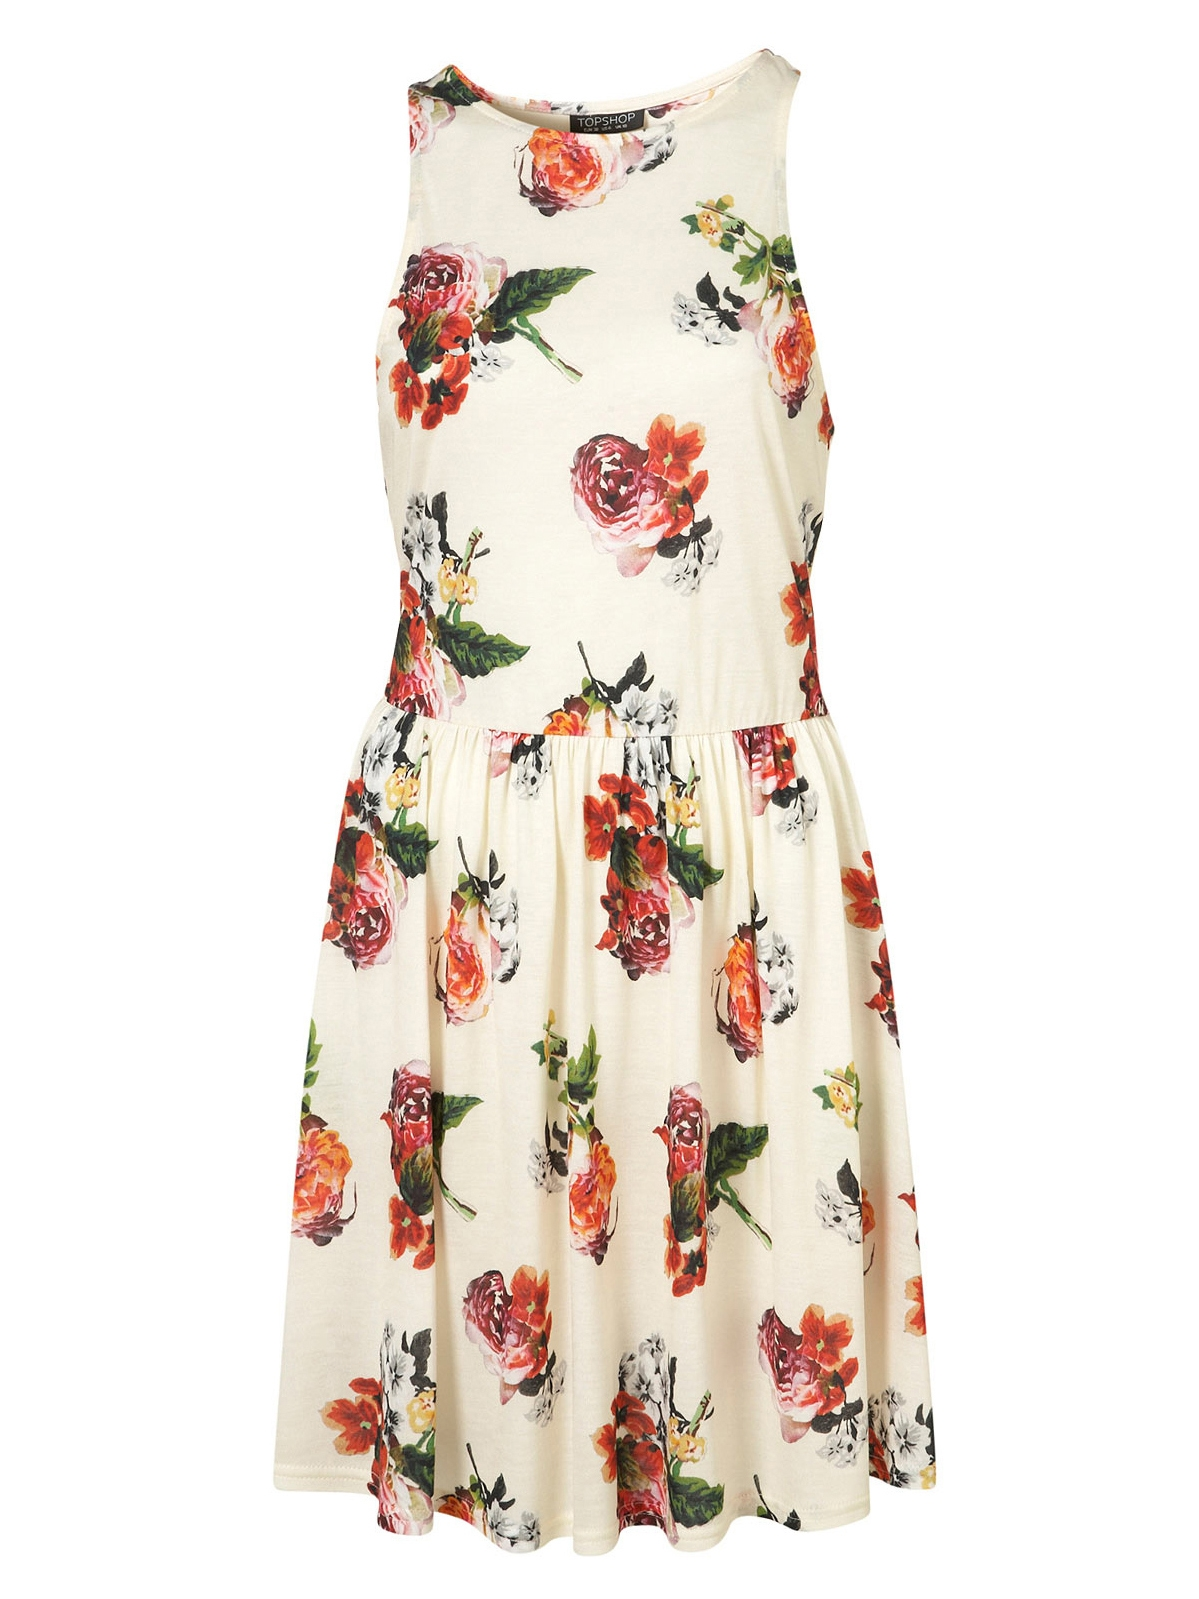 Louise Paris Topshop Rosey Posey Ecru Floral Printed Skater Dress